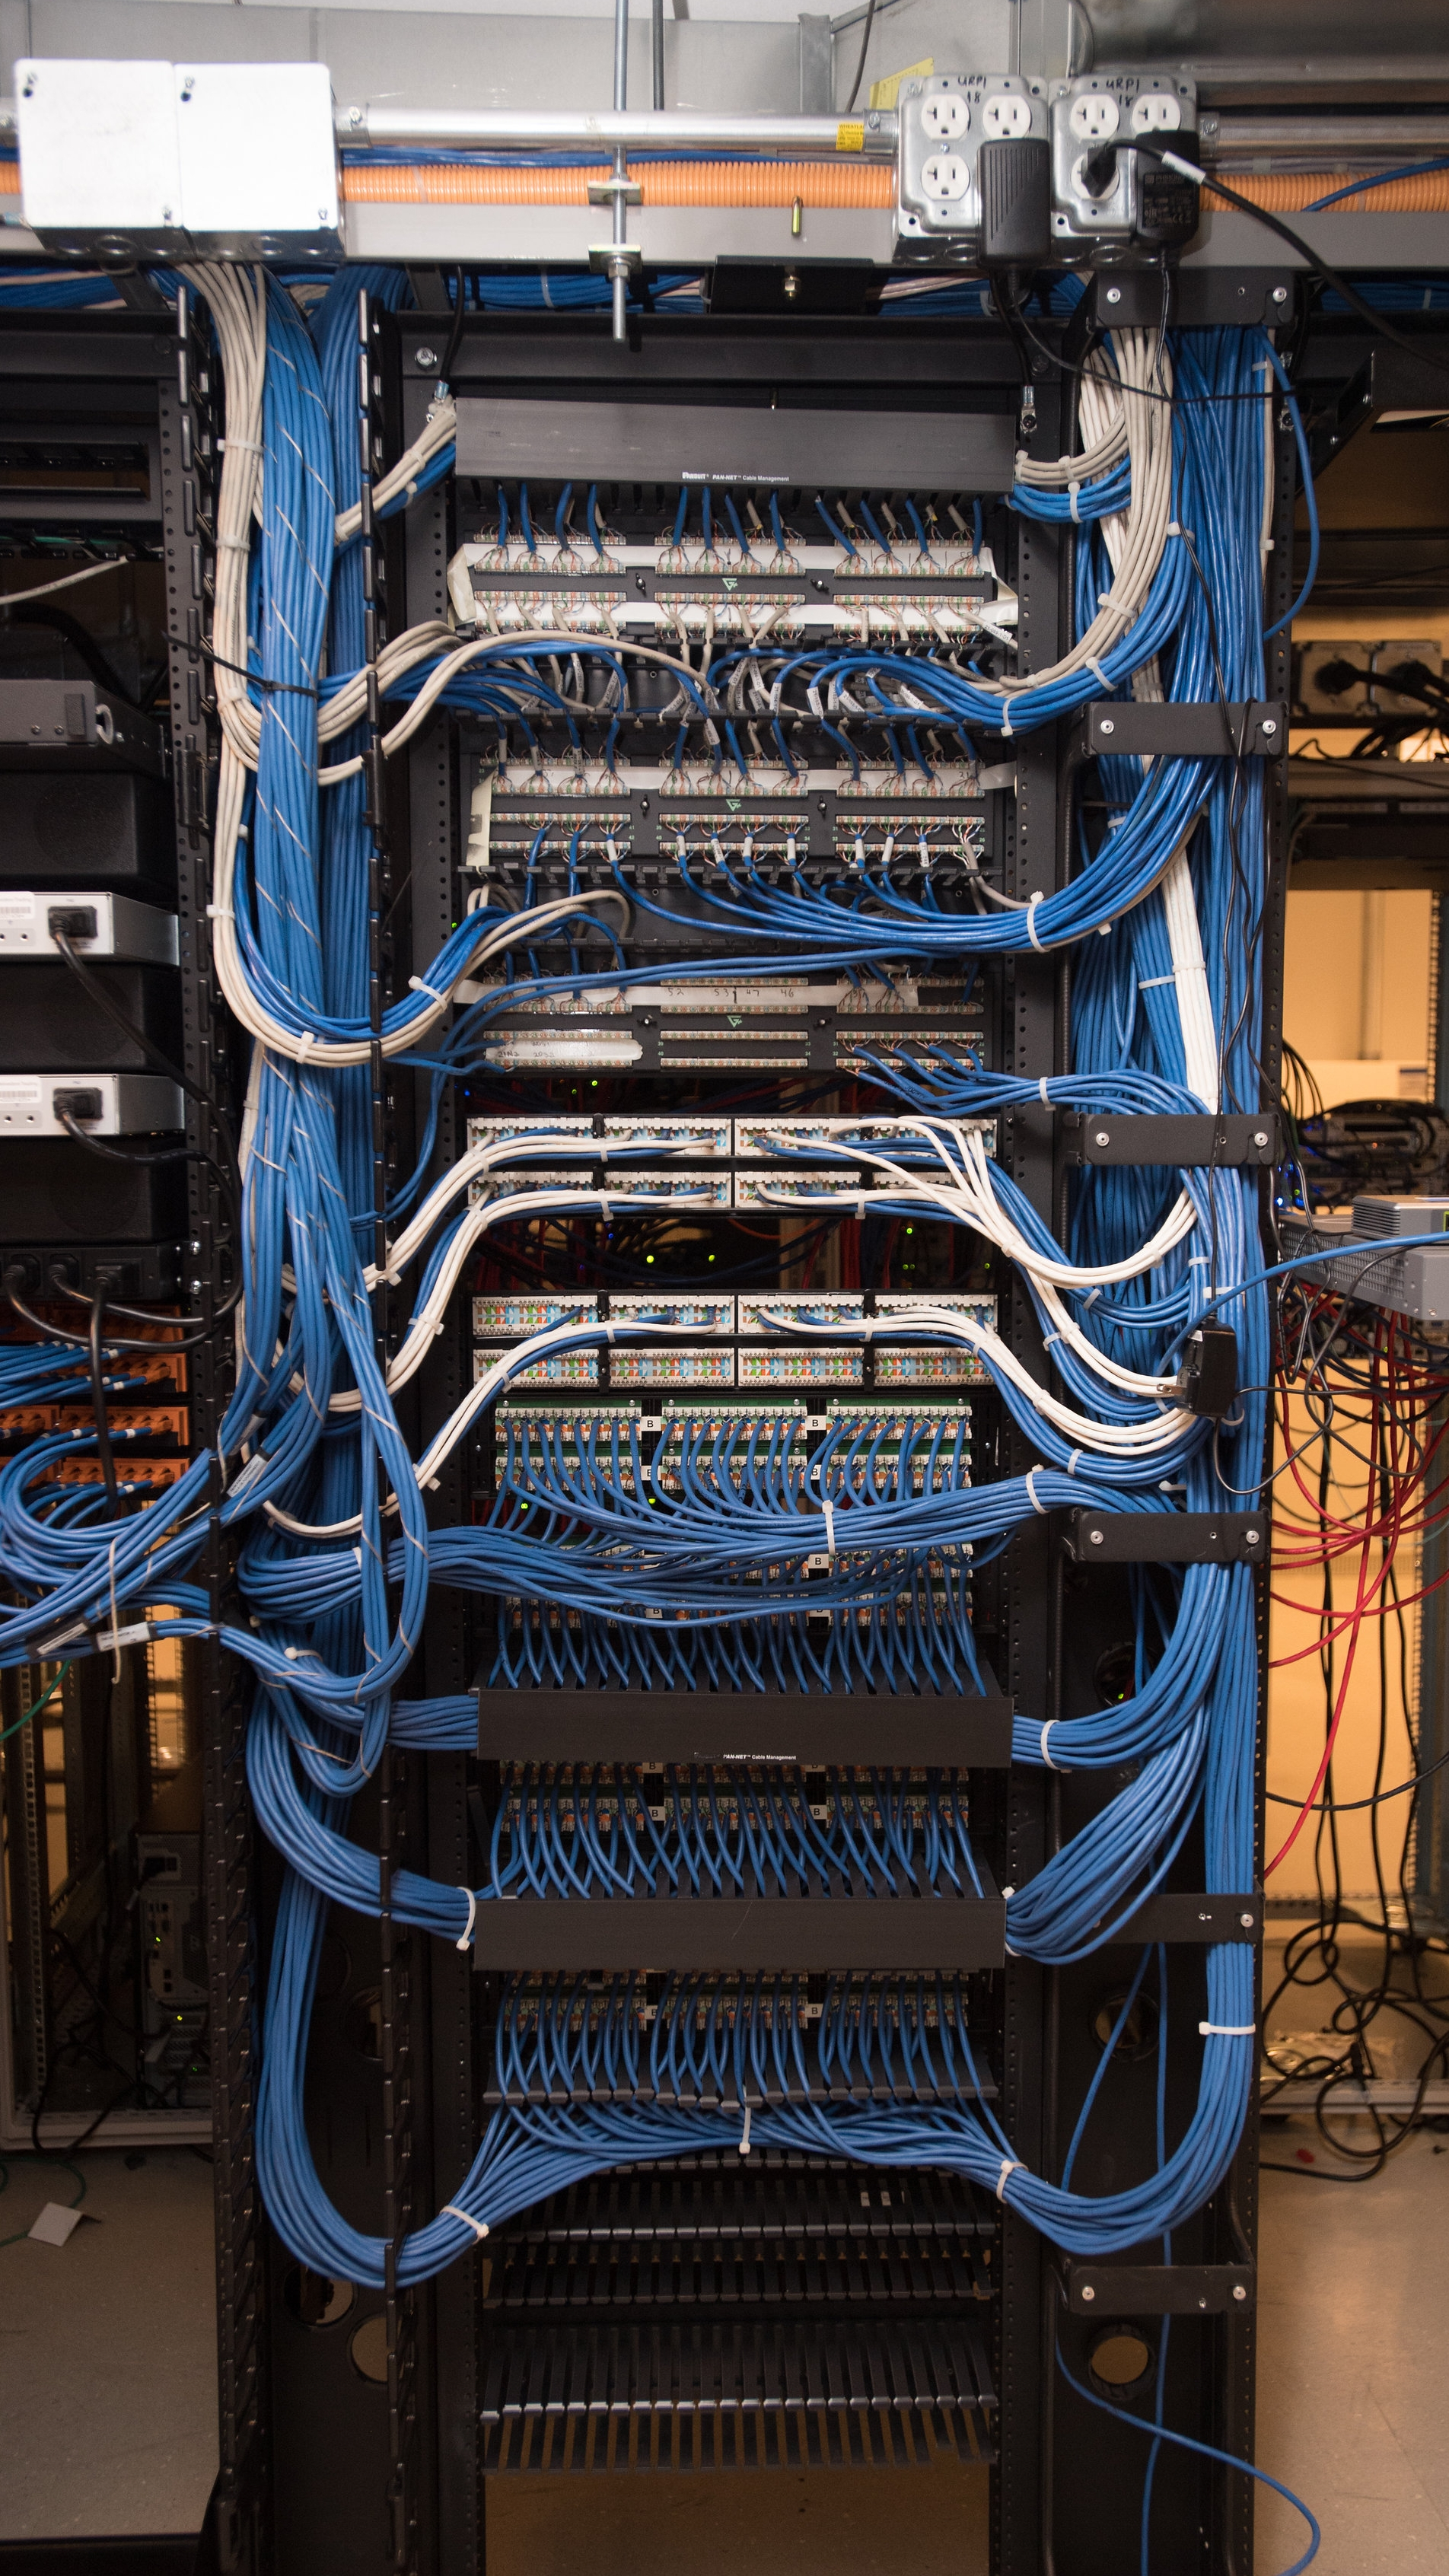 Photo of a computer server room with lots of wires